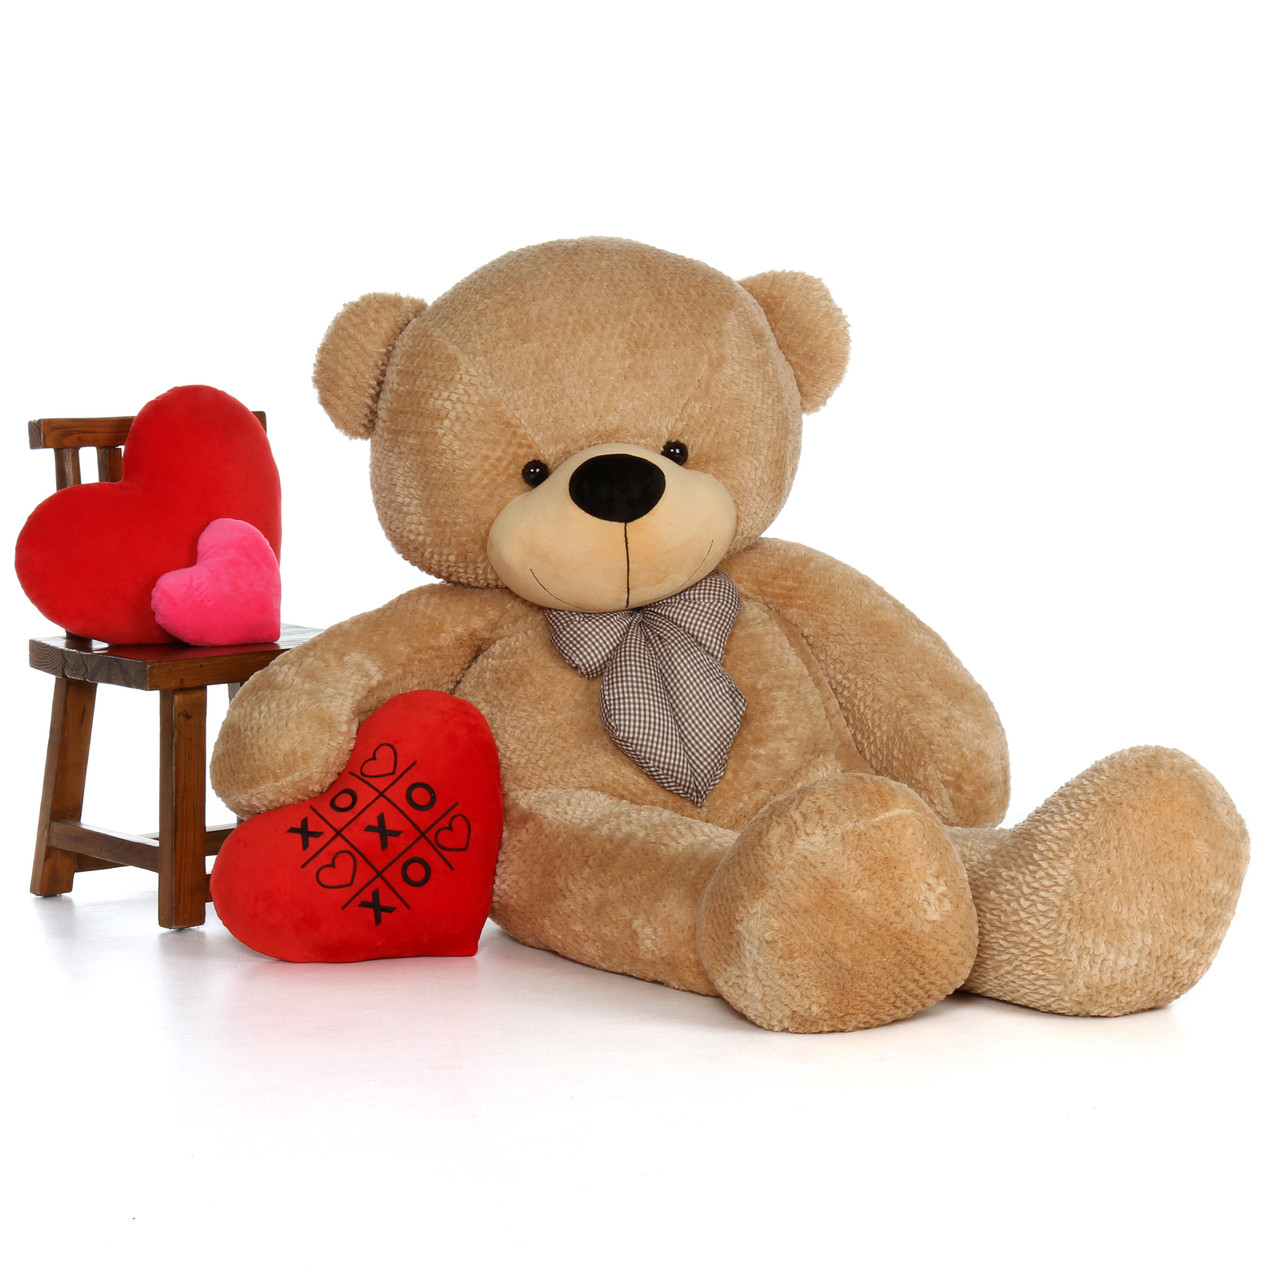 6ft Shaggy Cuddles Amber Brown Teddy  with XOXO heart pillow